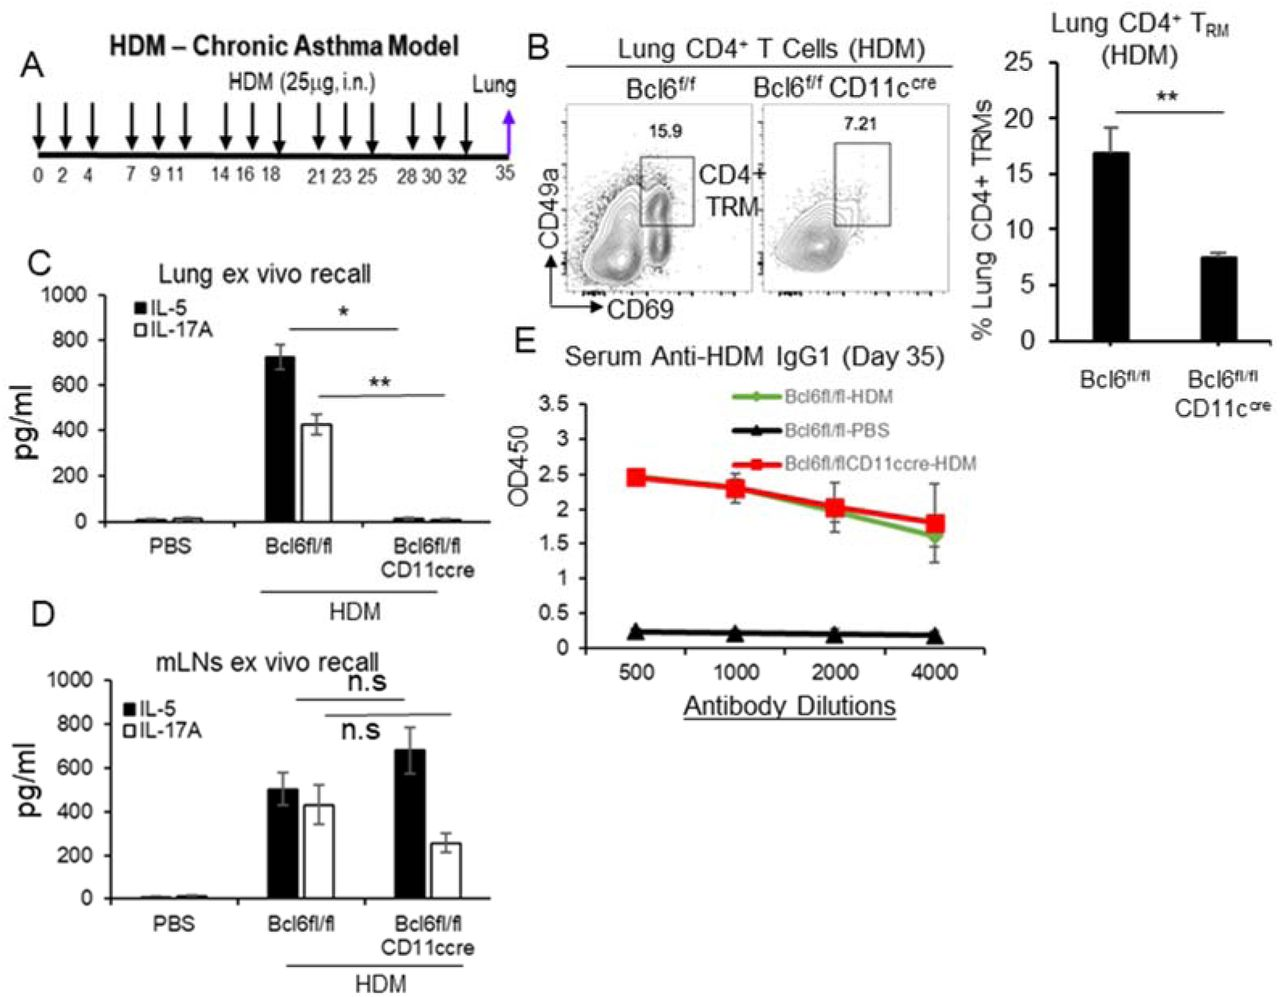 HDM induces CD4 + memory T H cells in mLNs but not in the lungs from Bcl6 fl/fl CD11c cre mice. A . A cartoon of chronic HDM treatment in mice. n=3 mice/group. B . Flow cytometry analysis ( left ) and frequency ( right ) of CD4 + CD69 + CD49a + T RM in HDM-induced Bcl6 fl/fl and Bcl6 fl/fl CD11c cre mice on day 35. (n=3mice/group) Data are representative of three independent experiments. C-D . Lung cells ( C ) or mediastinal lymph nodes (mLNs) ( D ) from HDM treated mice on day 35 from ( A ) were stimulated with 25μg/ml HDM for 4 days in culture. T H 2 and T H 17 cytokines were measured in the supernatant by ELISA. Data are representative of three independent experiments. E . Serum anti-HDM IgG1 were determined in the HDM mice on day 35 from ( A ) by ELISA. Data are representative of three independent experiments. Graphs represent means ± standard error. The significance is determined by one-way ANOVA Tukey's multiple comparison test ( C, D ) or unpaired Student's t test ( B ). *p